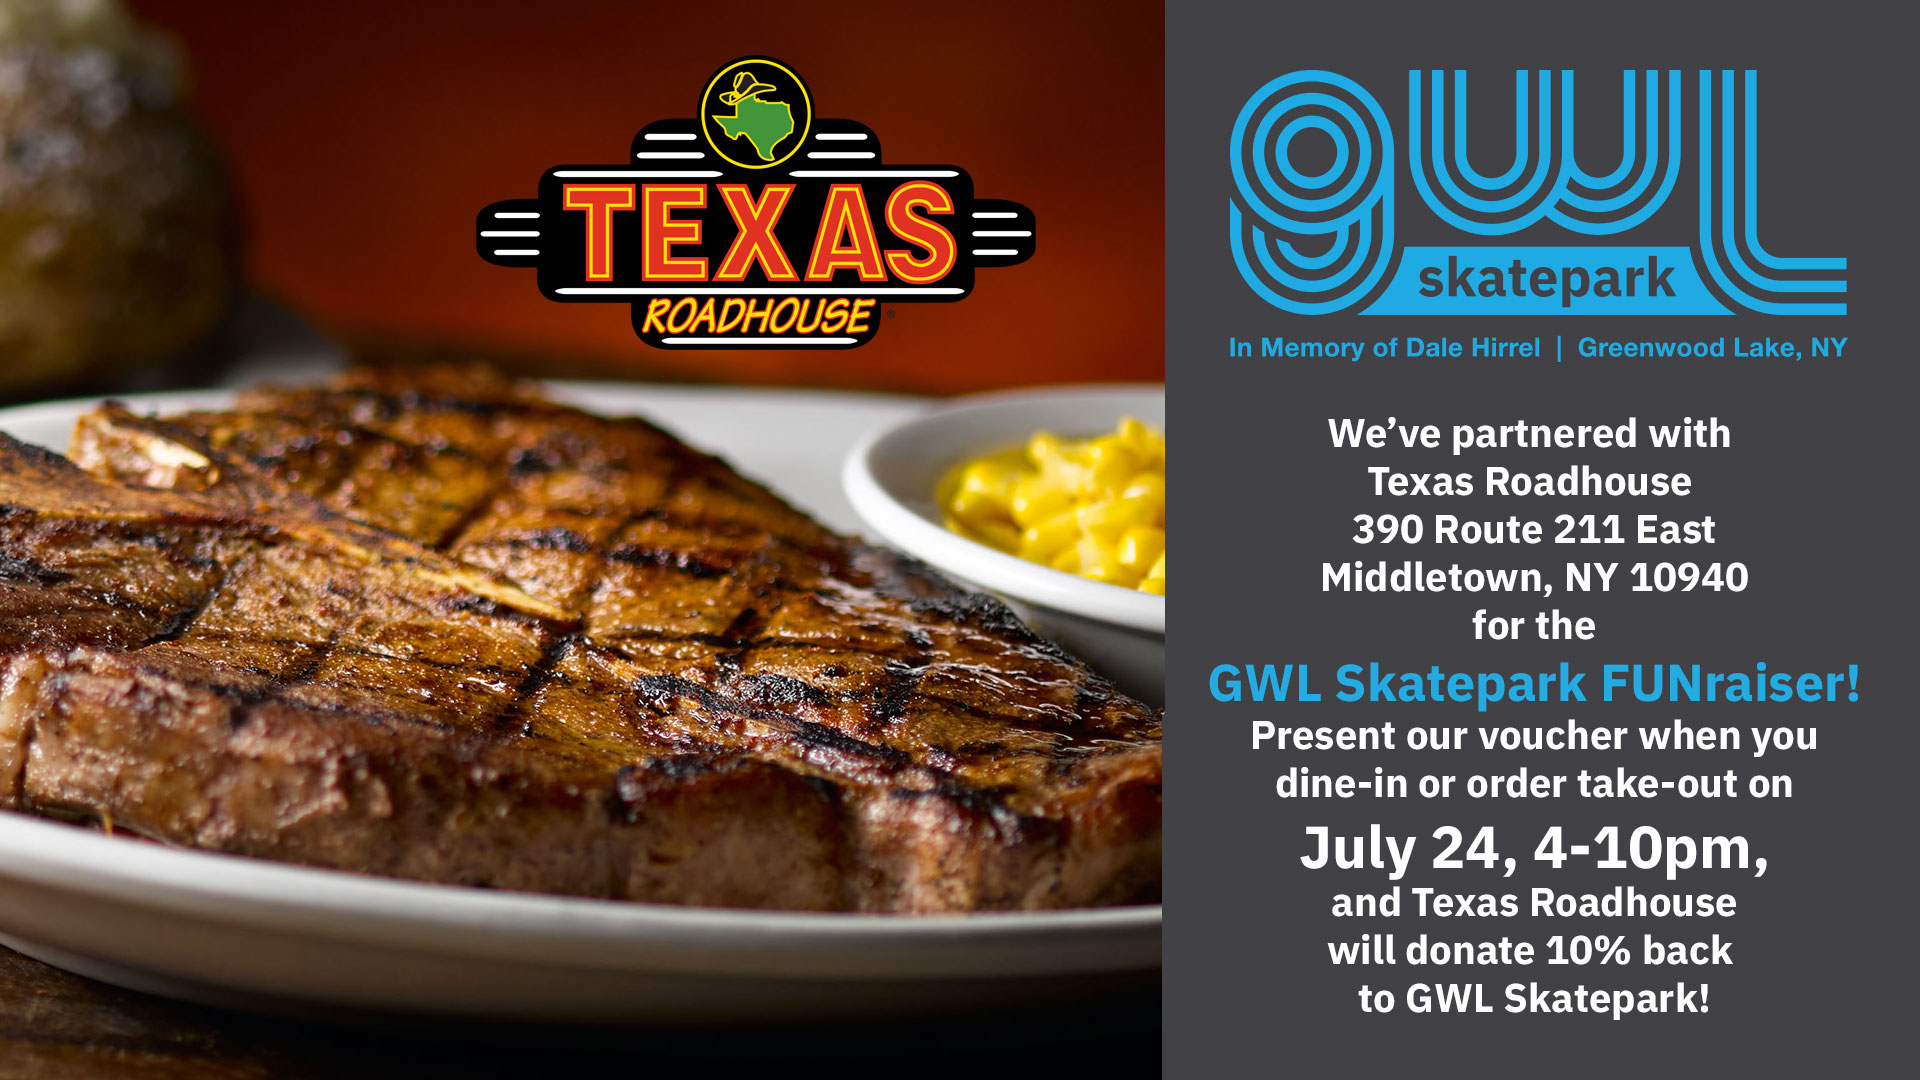 GWLSkatePark fundraising event, Texas Roadhouse, FUNraiser